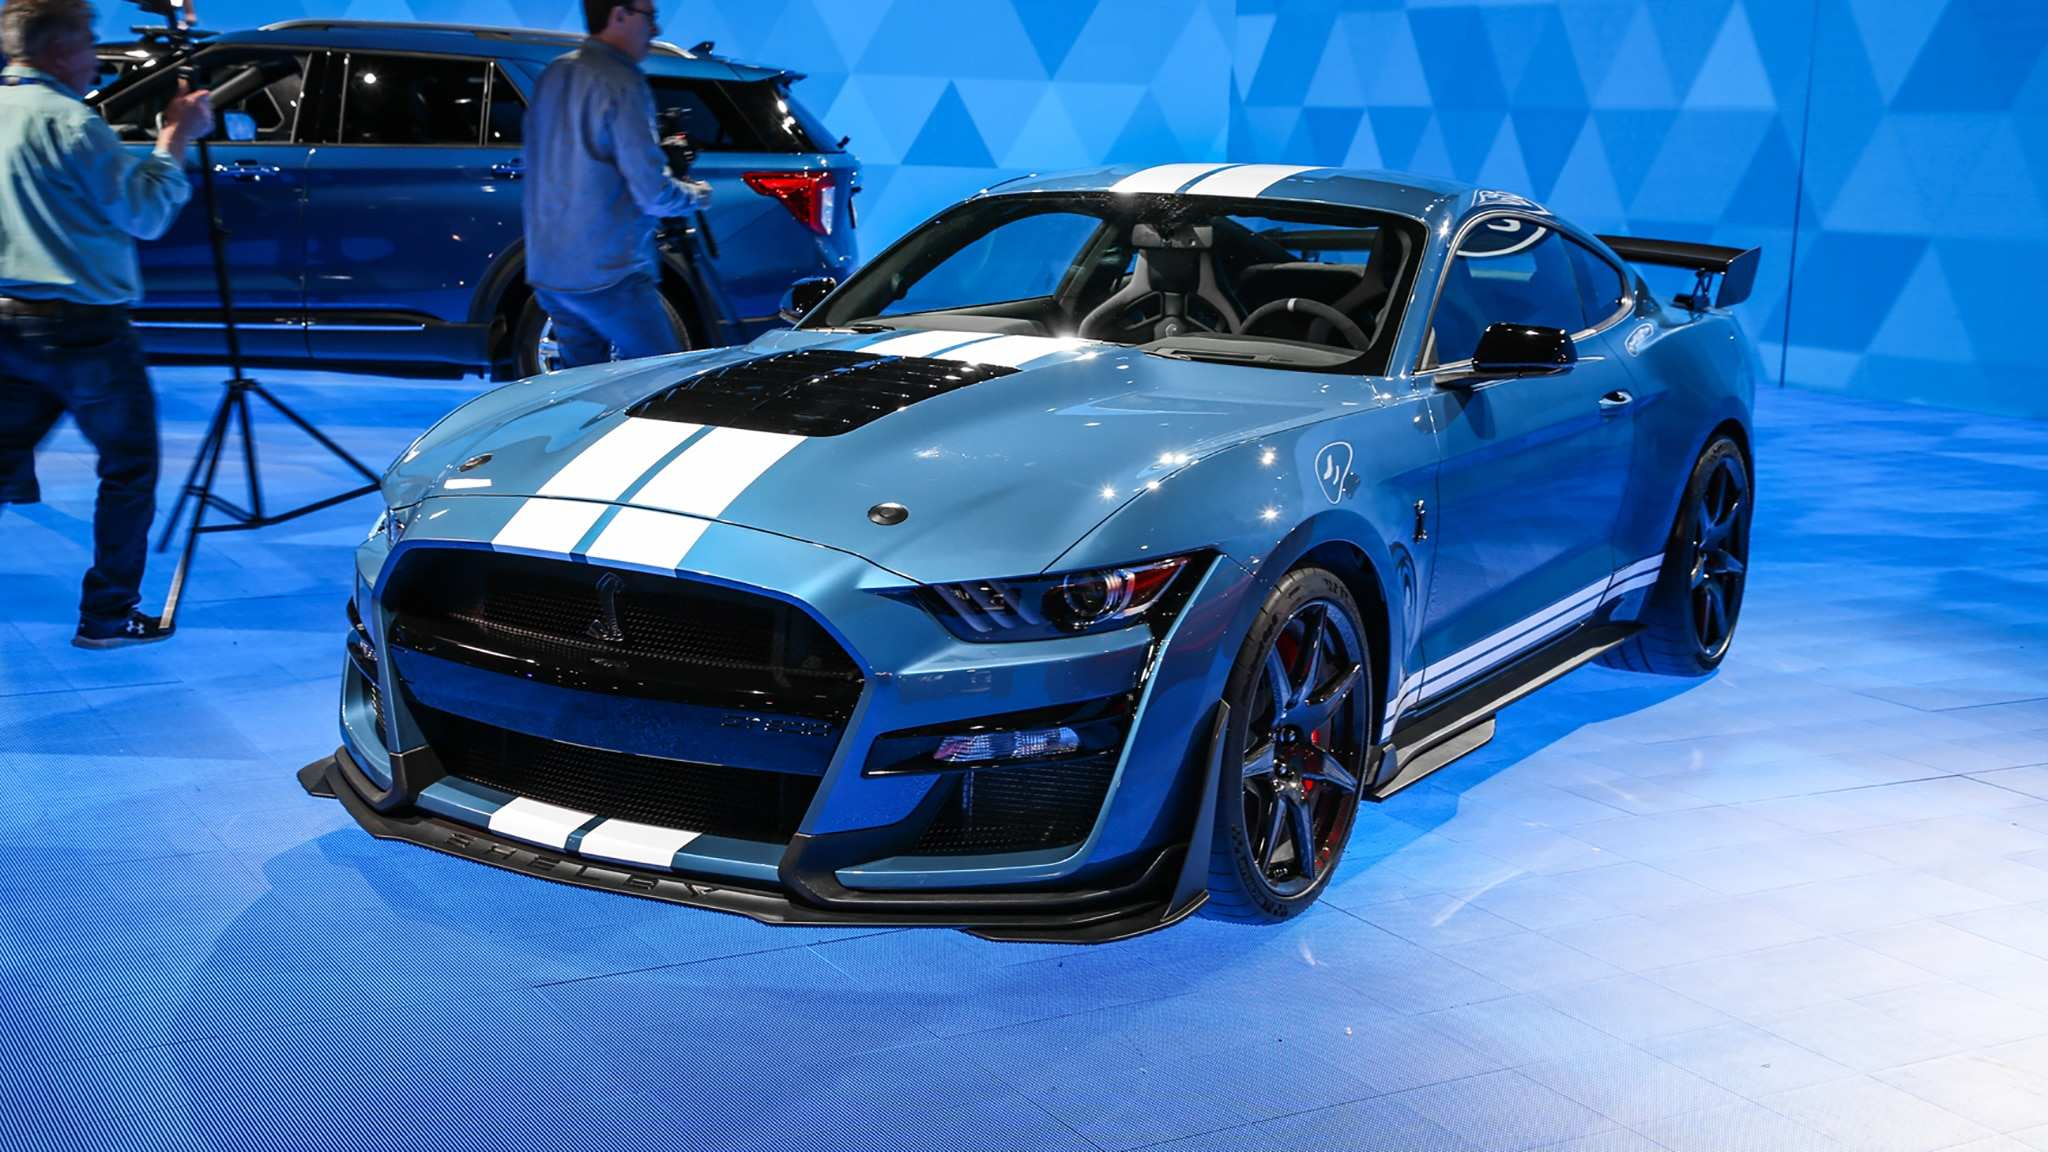 50 Best Price Of 2020 Ford Mustang Shelby Gt500 Pricing